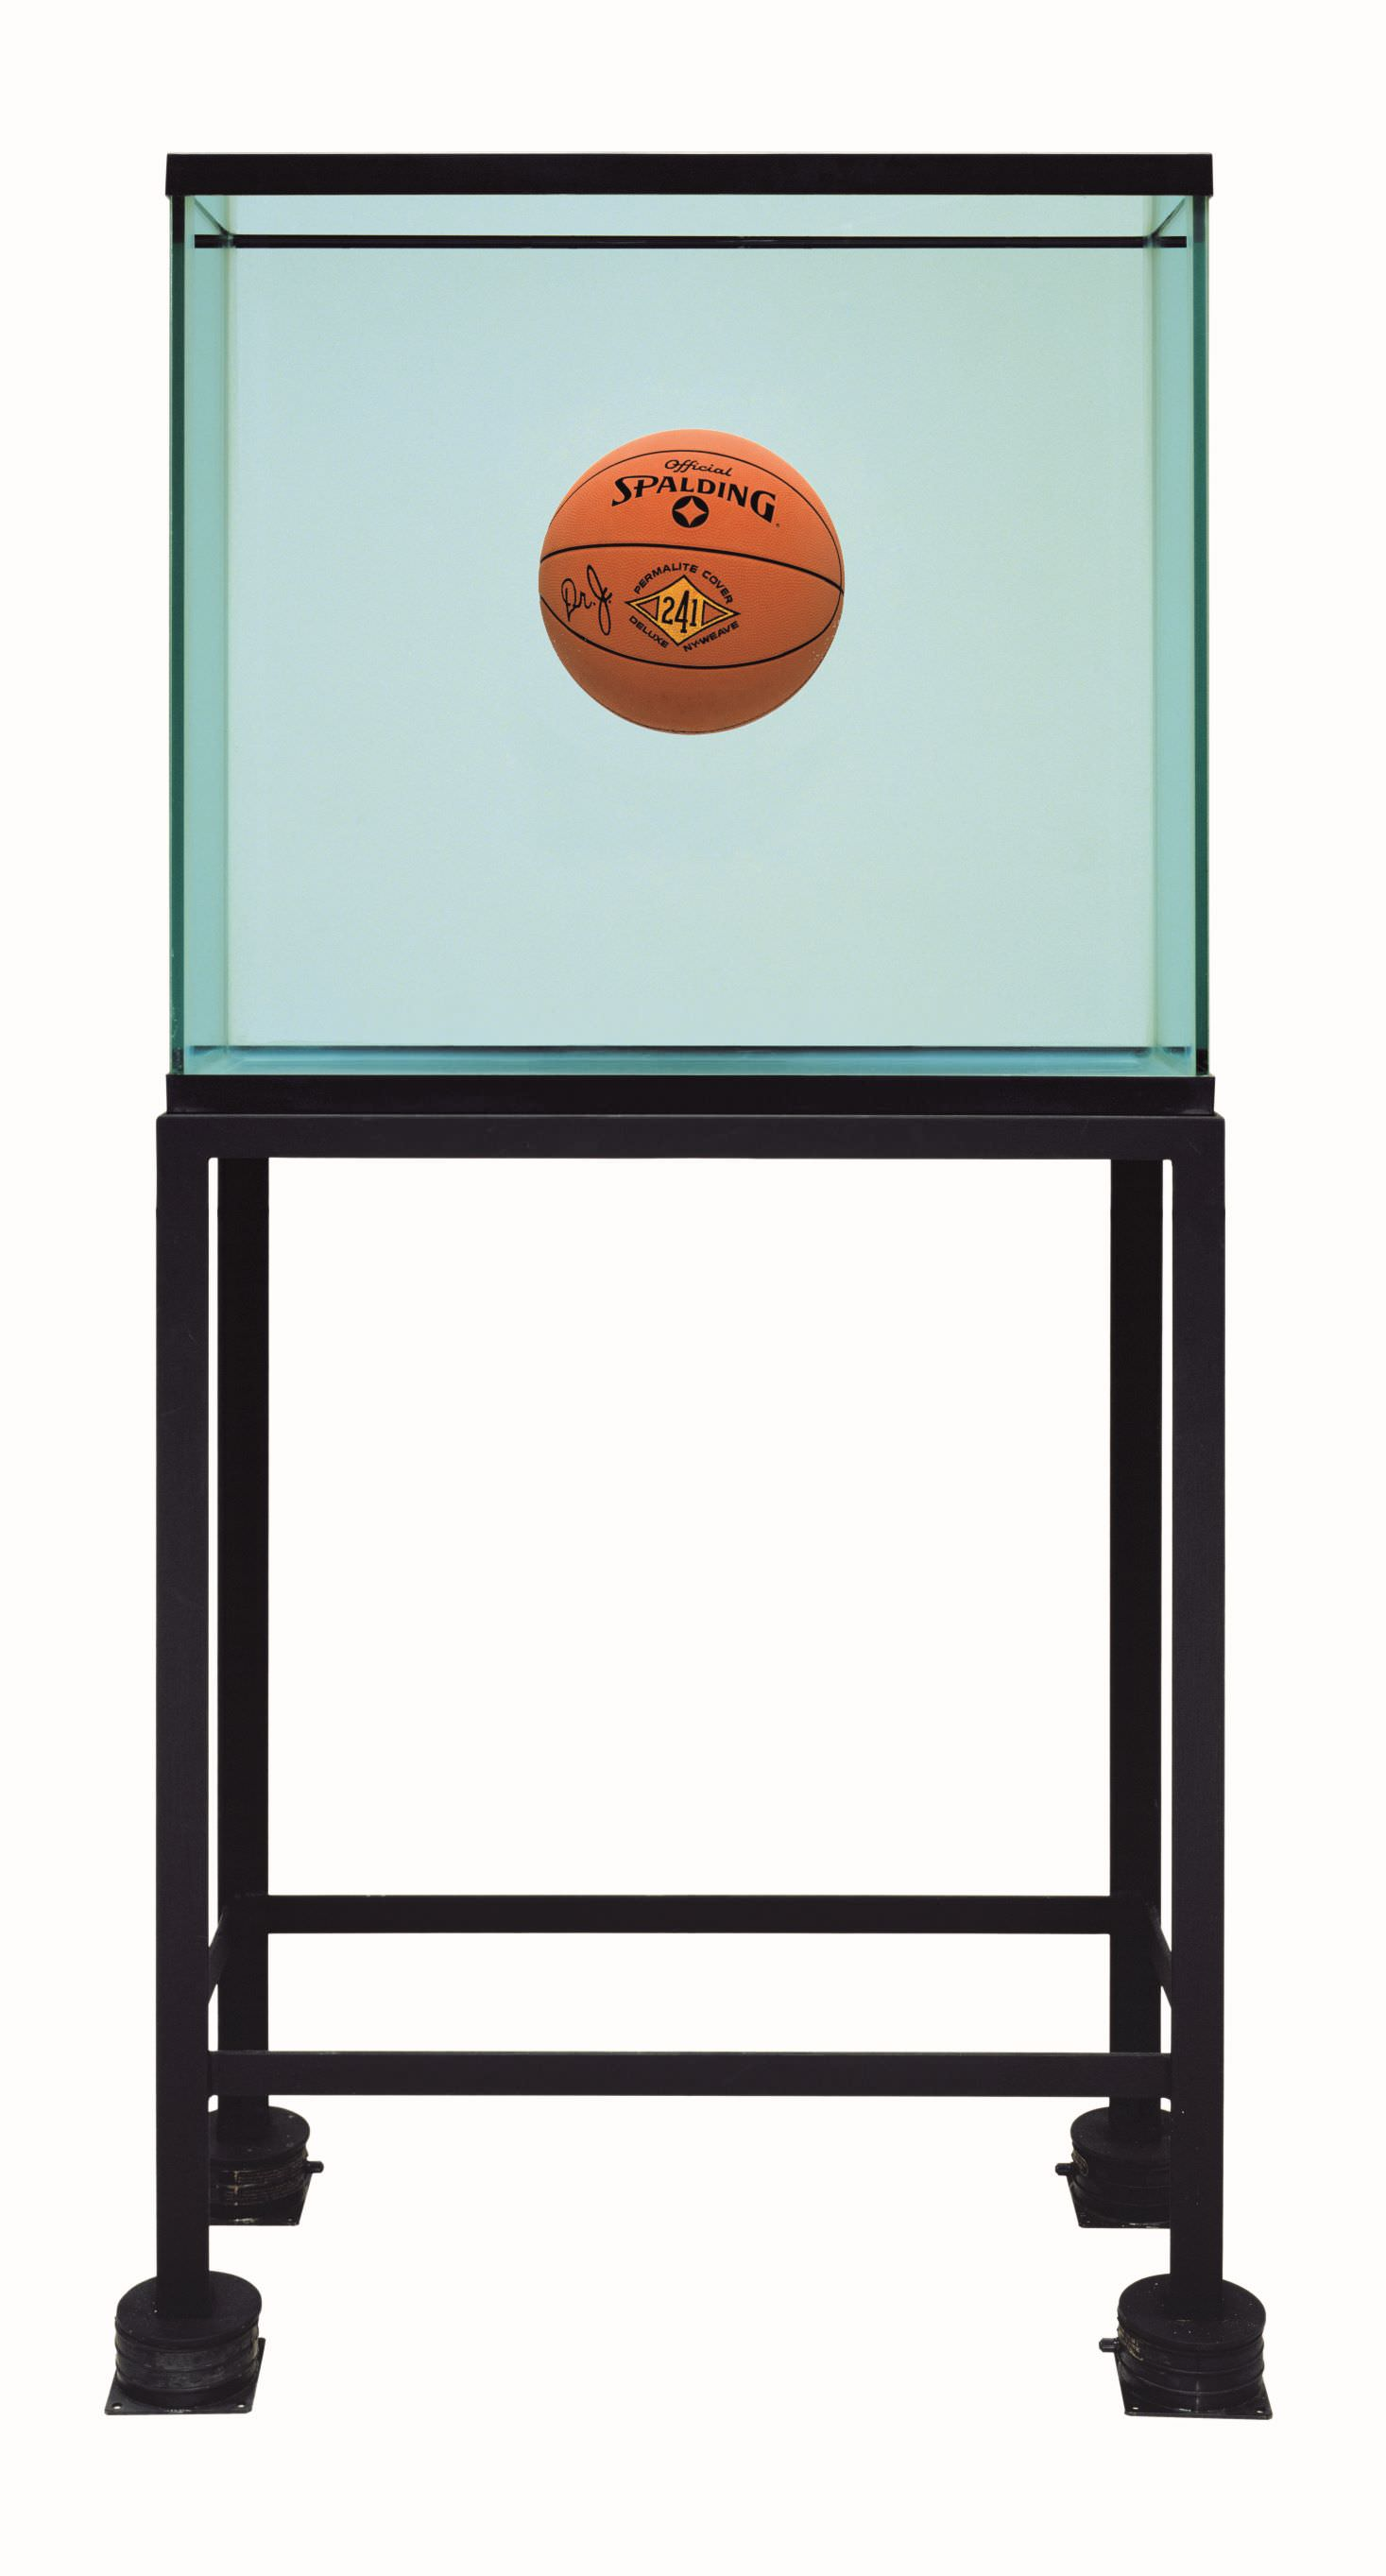 Jeff Koons (b. 1955); One Ball Total Equilibrium Tank (Spalding Dr. J 241 Series); 1985; Glass, steel, sodium chloride reagent, distilled water, one basketball; 164.5 x 78.1 x 33.7 cm; Edition 2 of an edition of 2; Collection of BZ + Michael Schwartz, New York © Jeff Koons